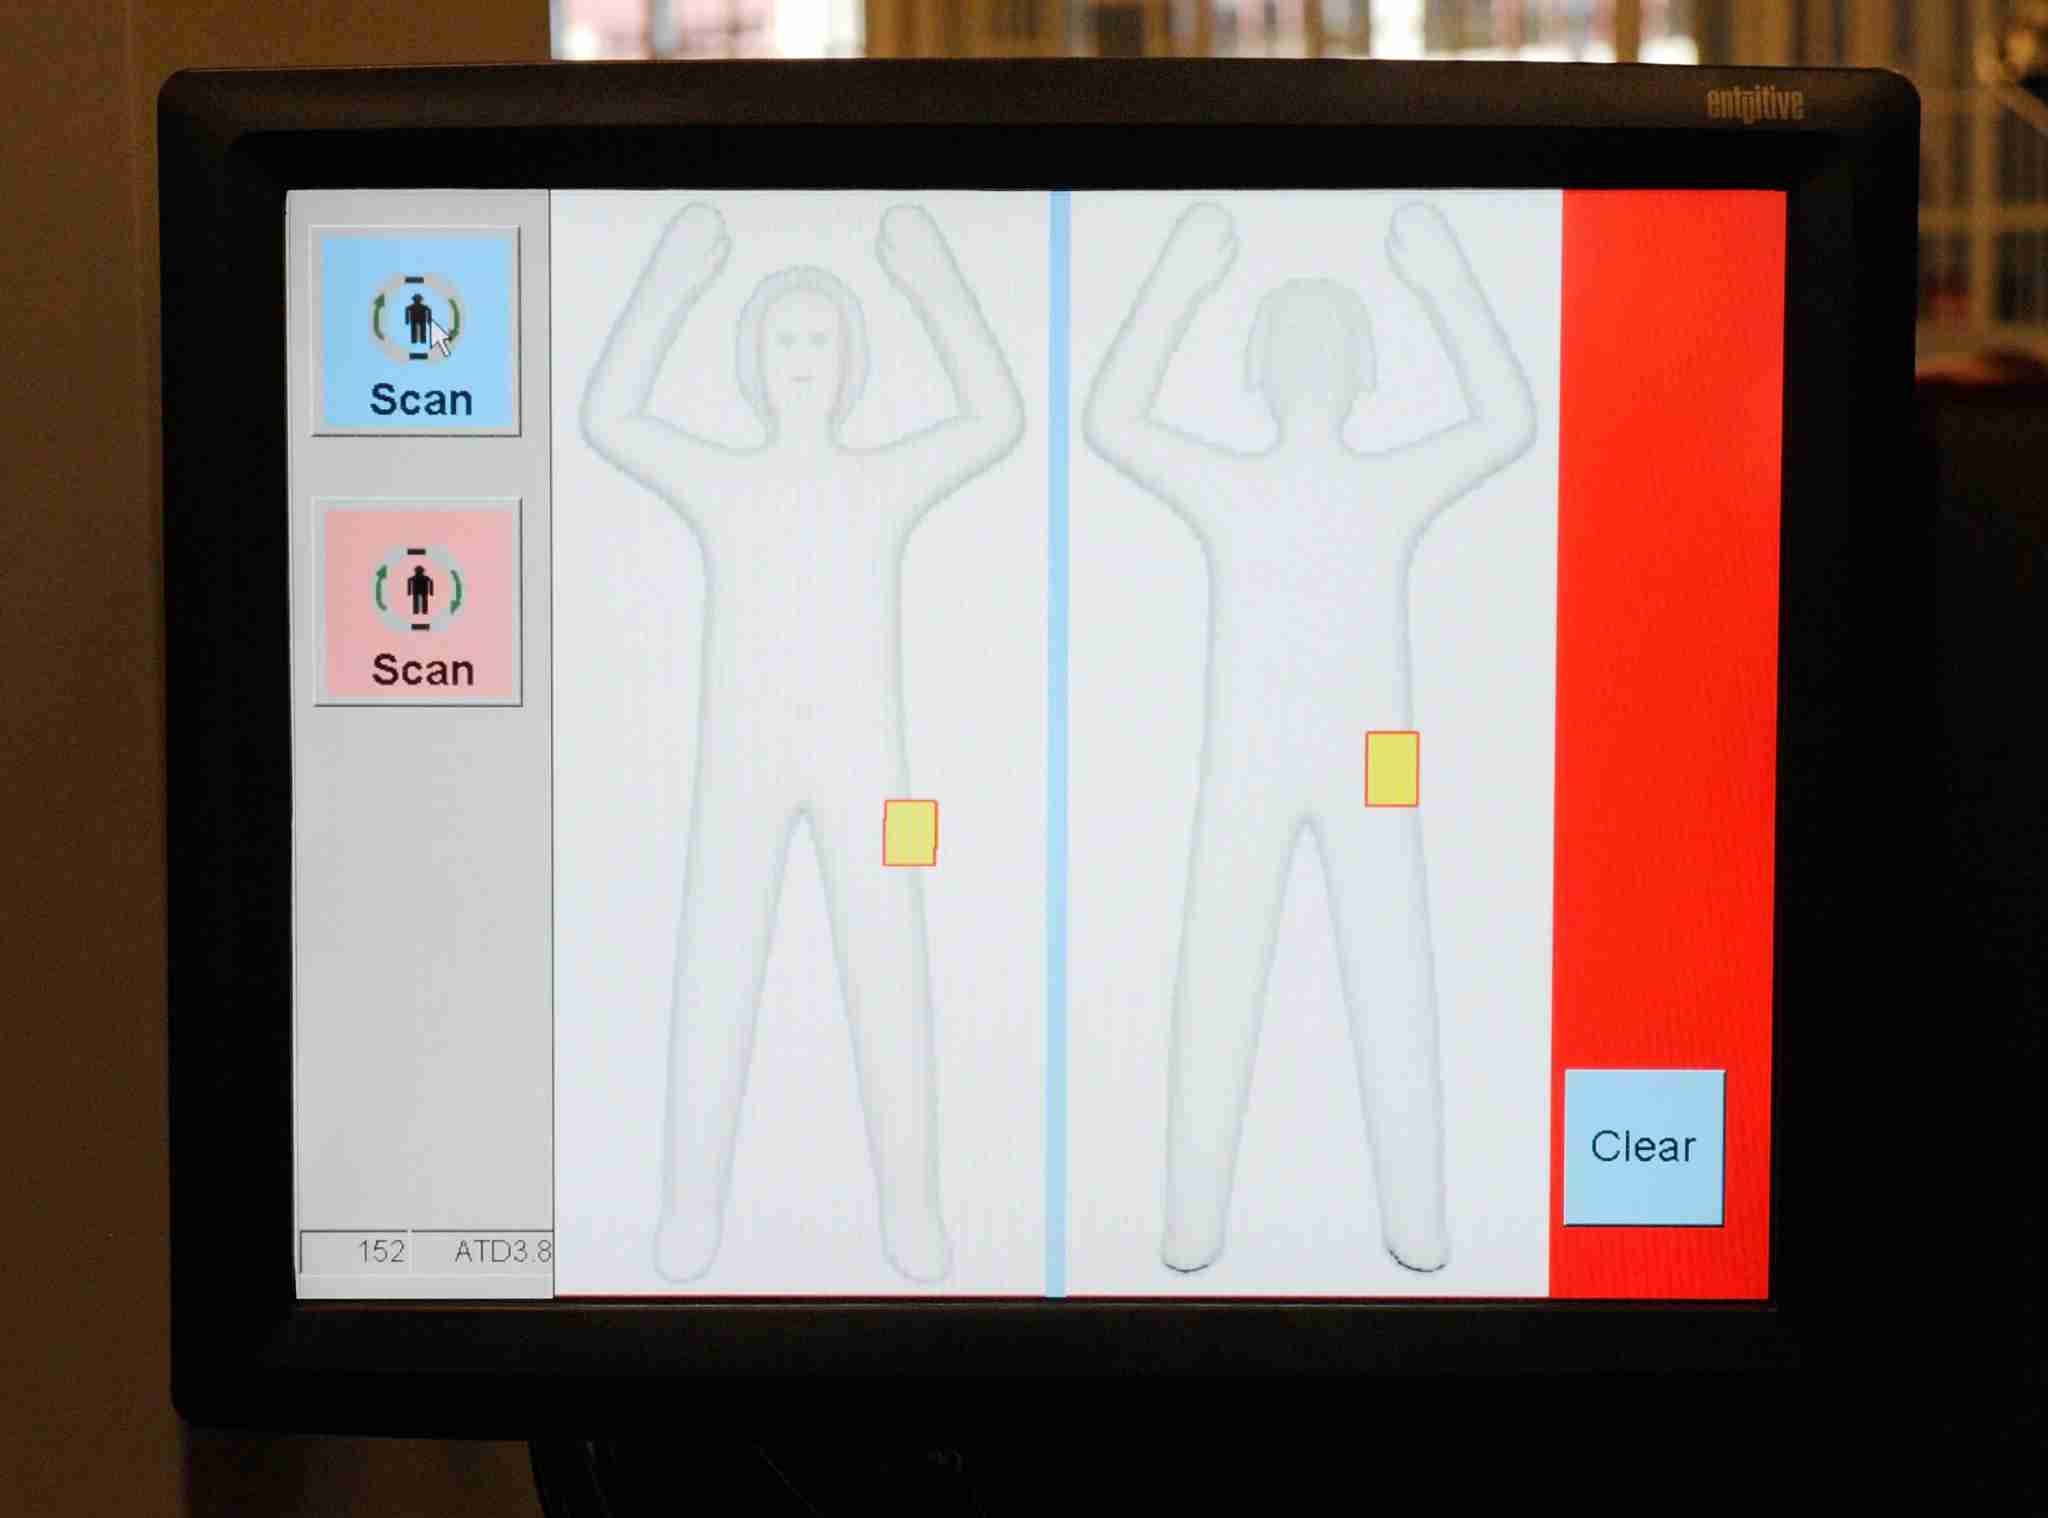 Body scanners relay an image to TSA agents if a traveler triggers the scanner. This is the image that TSA agents use to determine the region that should be subject to additional screening (Photo by Ethan Miller/Getty Images)